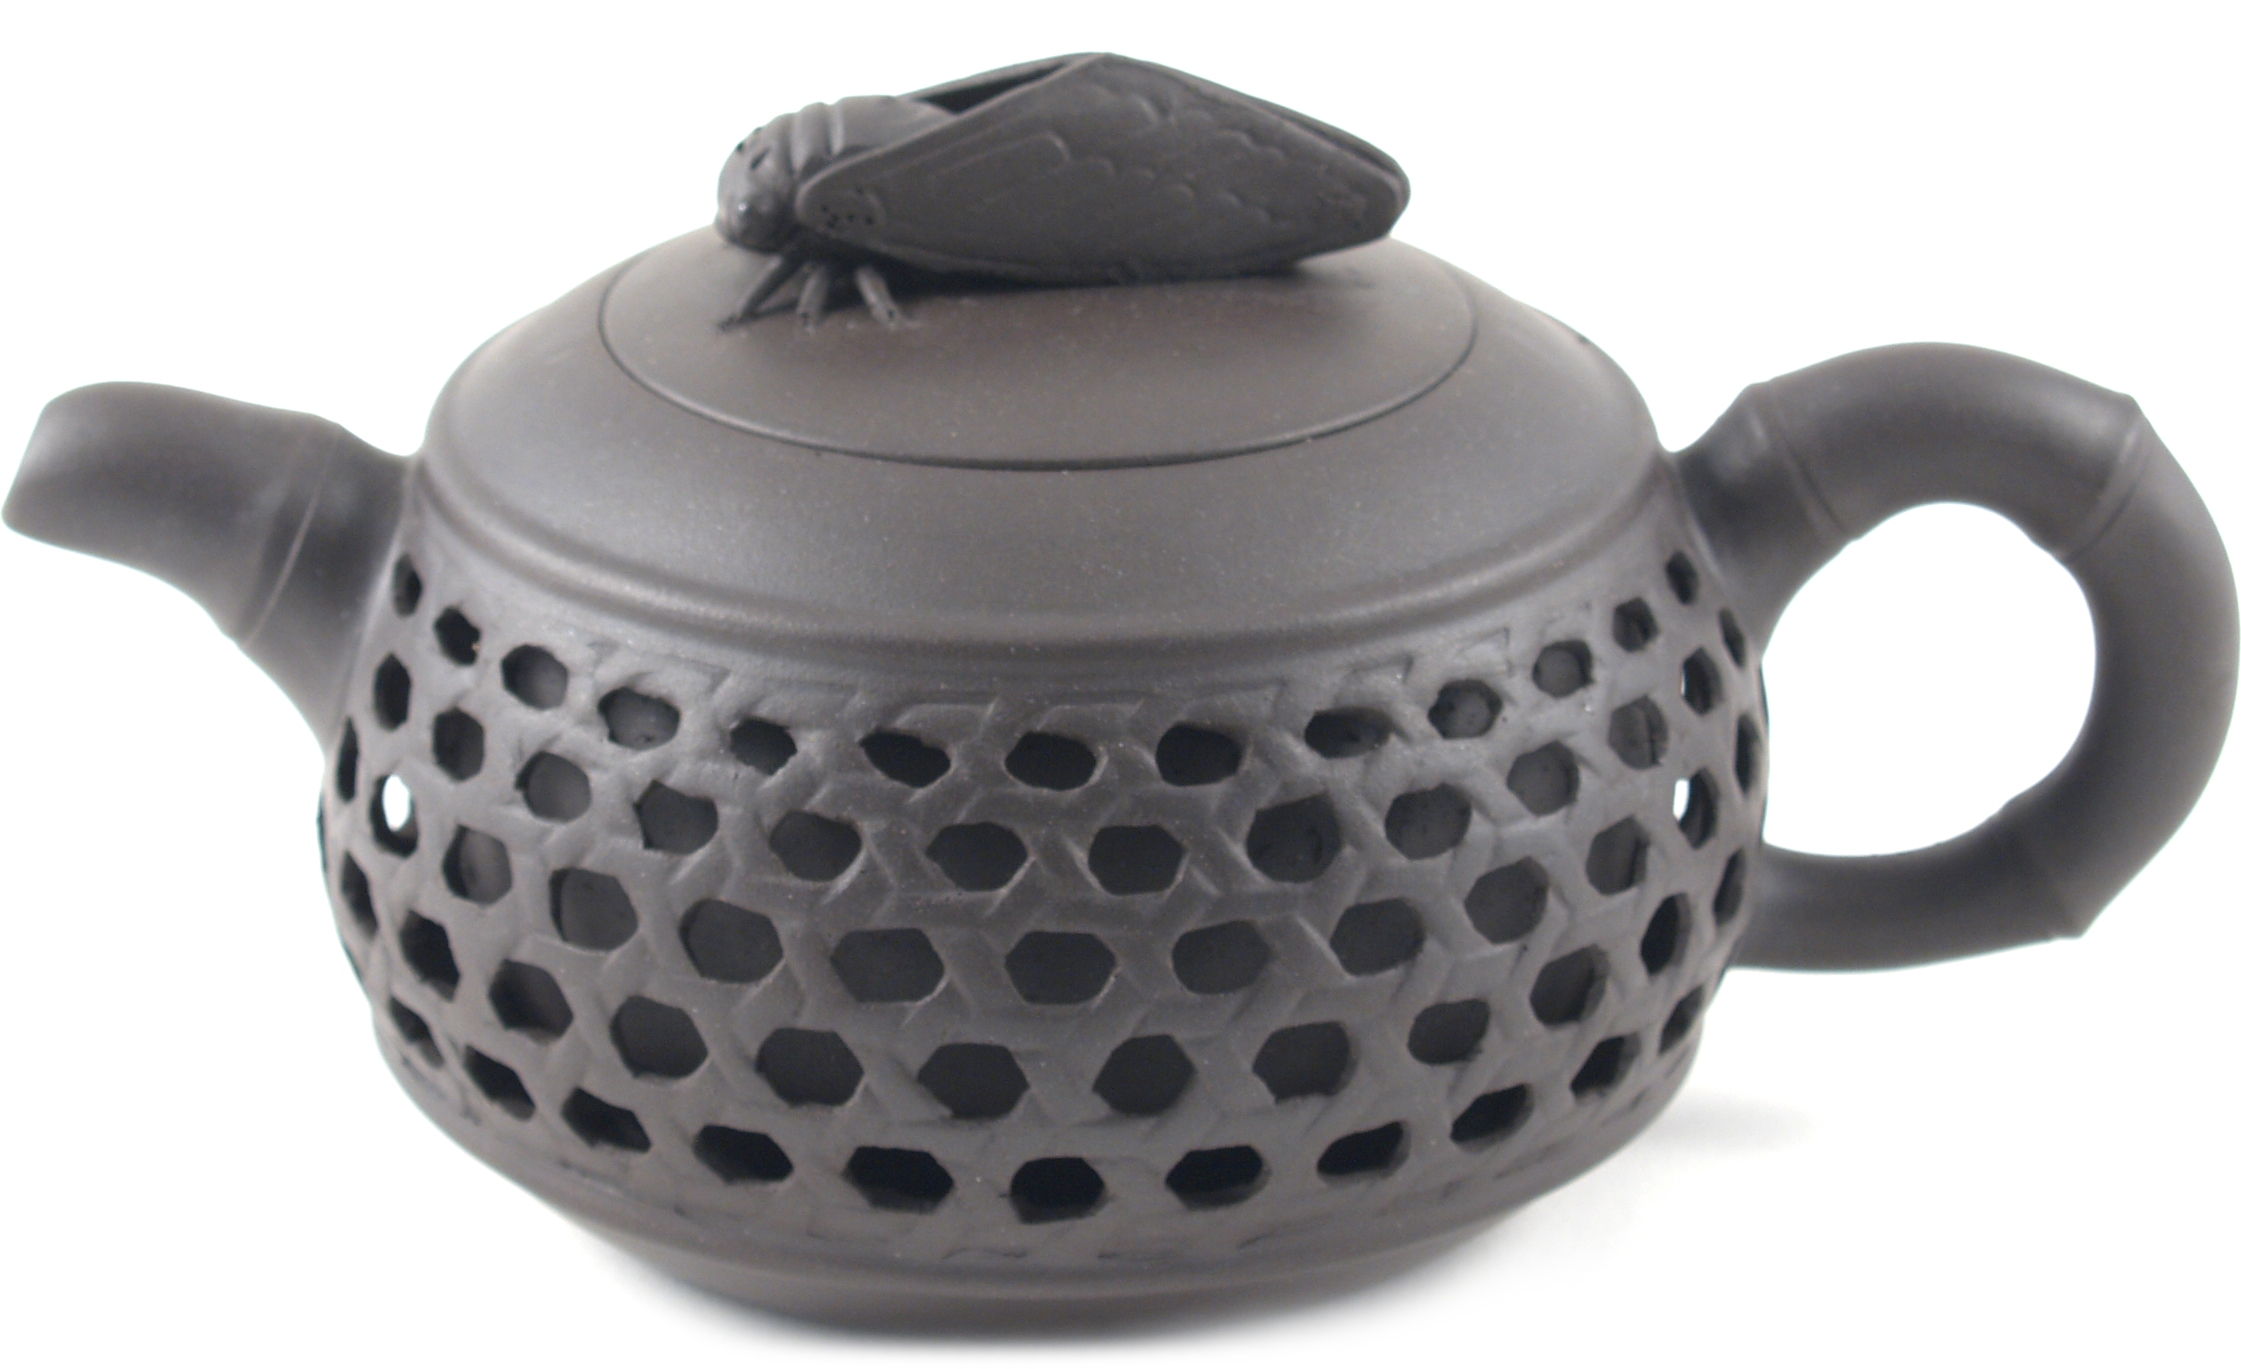 Brown Basket Weave Yixing Teapot, 9 Ounce